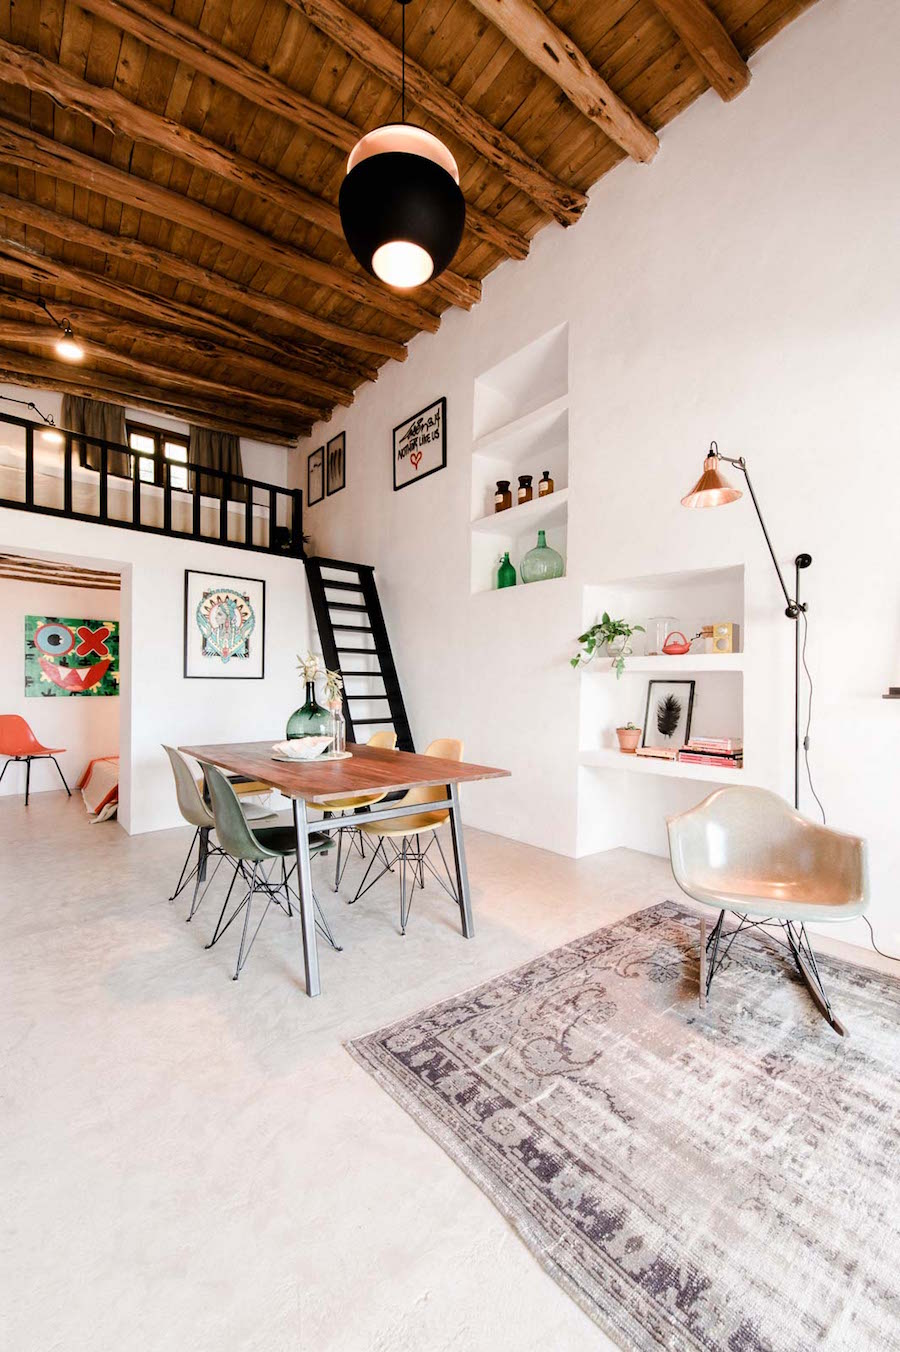 Old Stable Transformed into a Contemporary Dream House